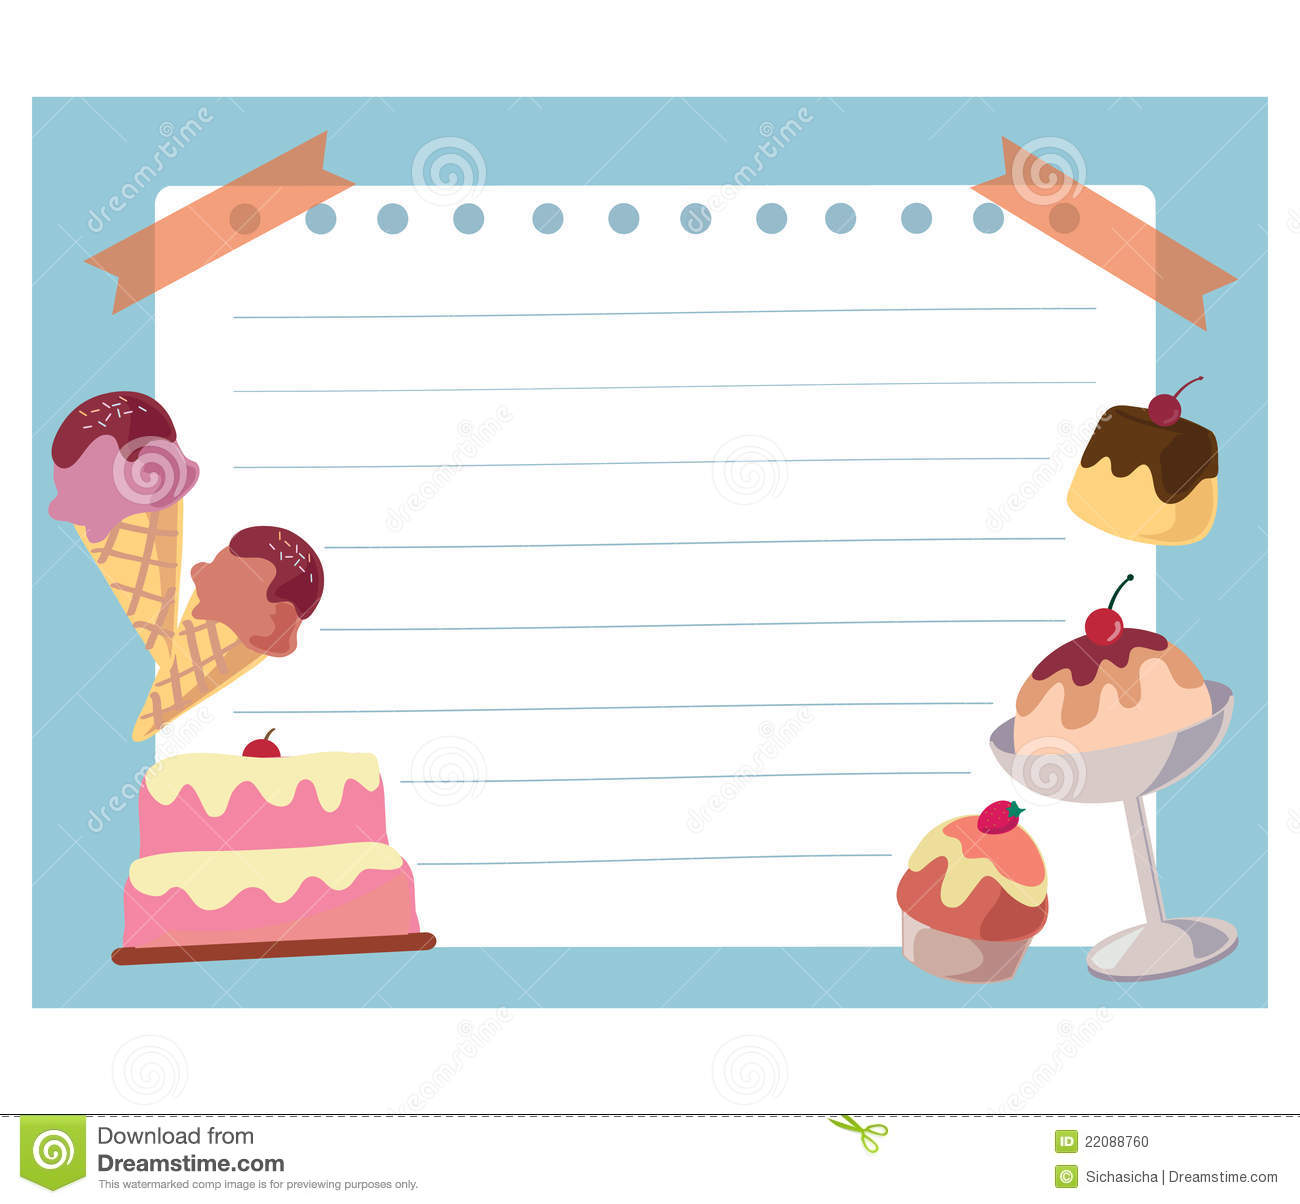 Download Cartoon Ice Cream Wallpaper Gallery: Cake And Ice Cream Frame Background Stock Illustration